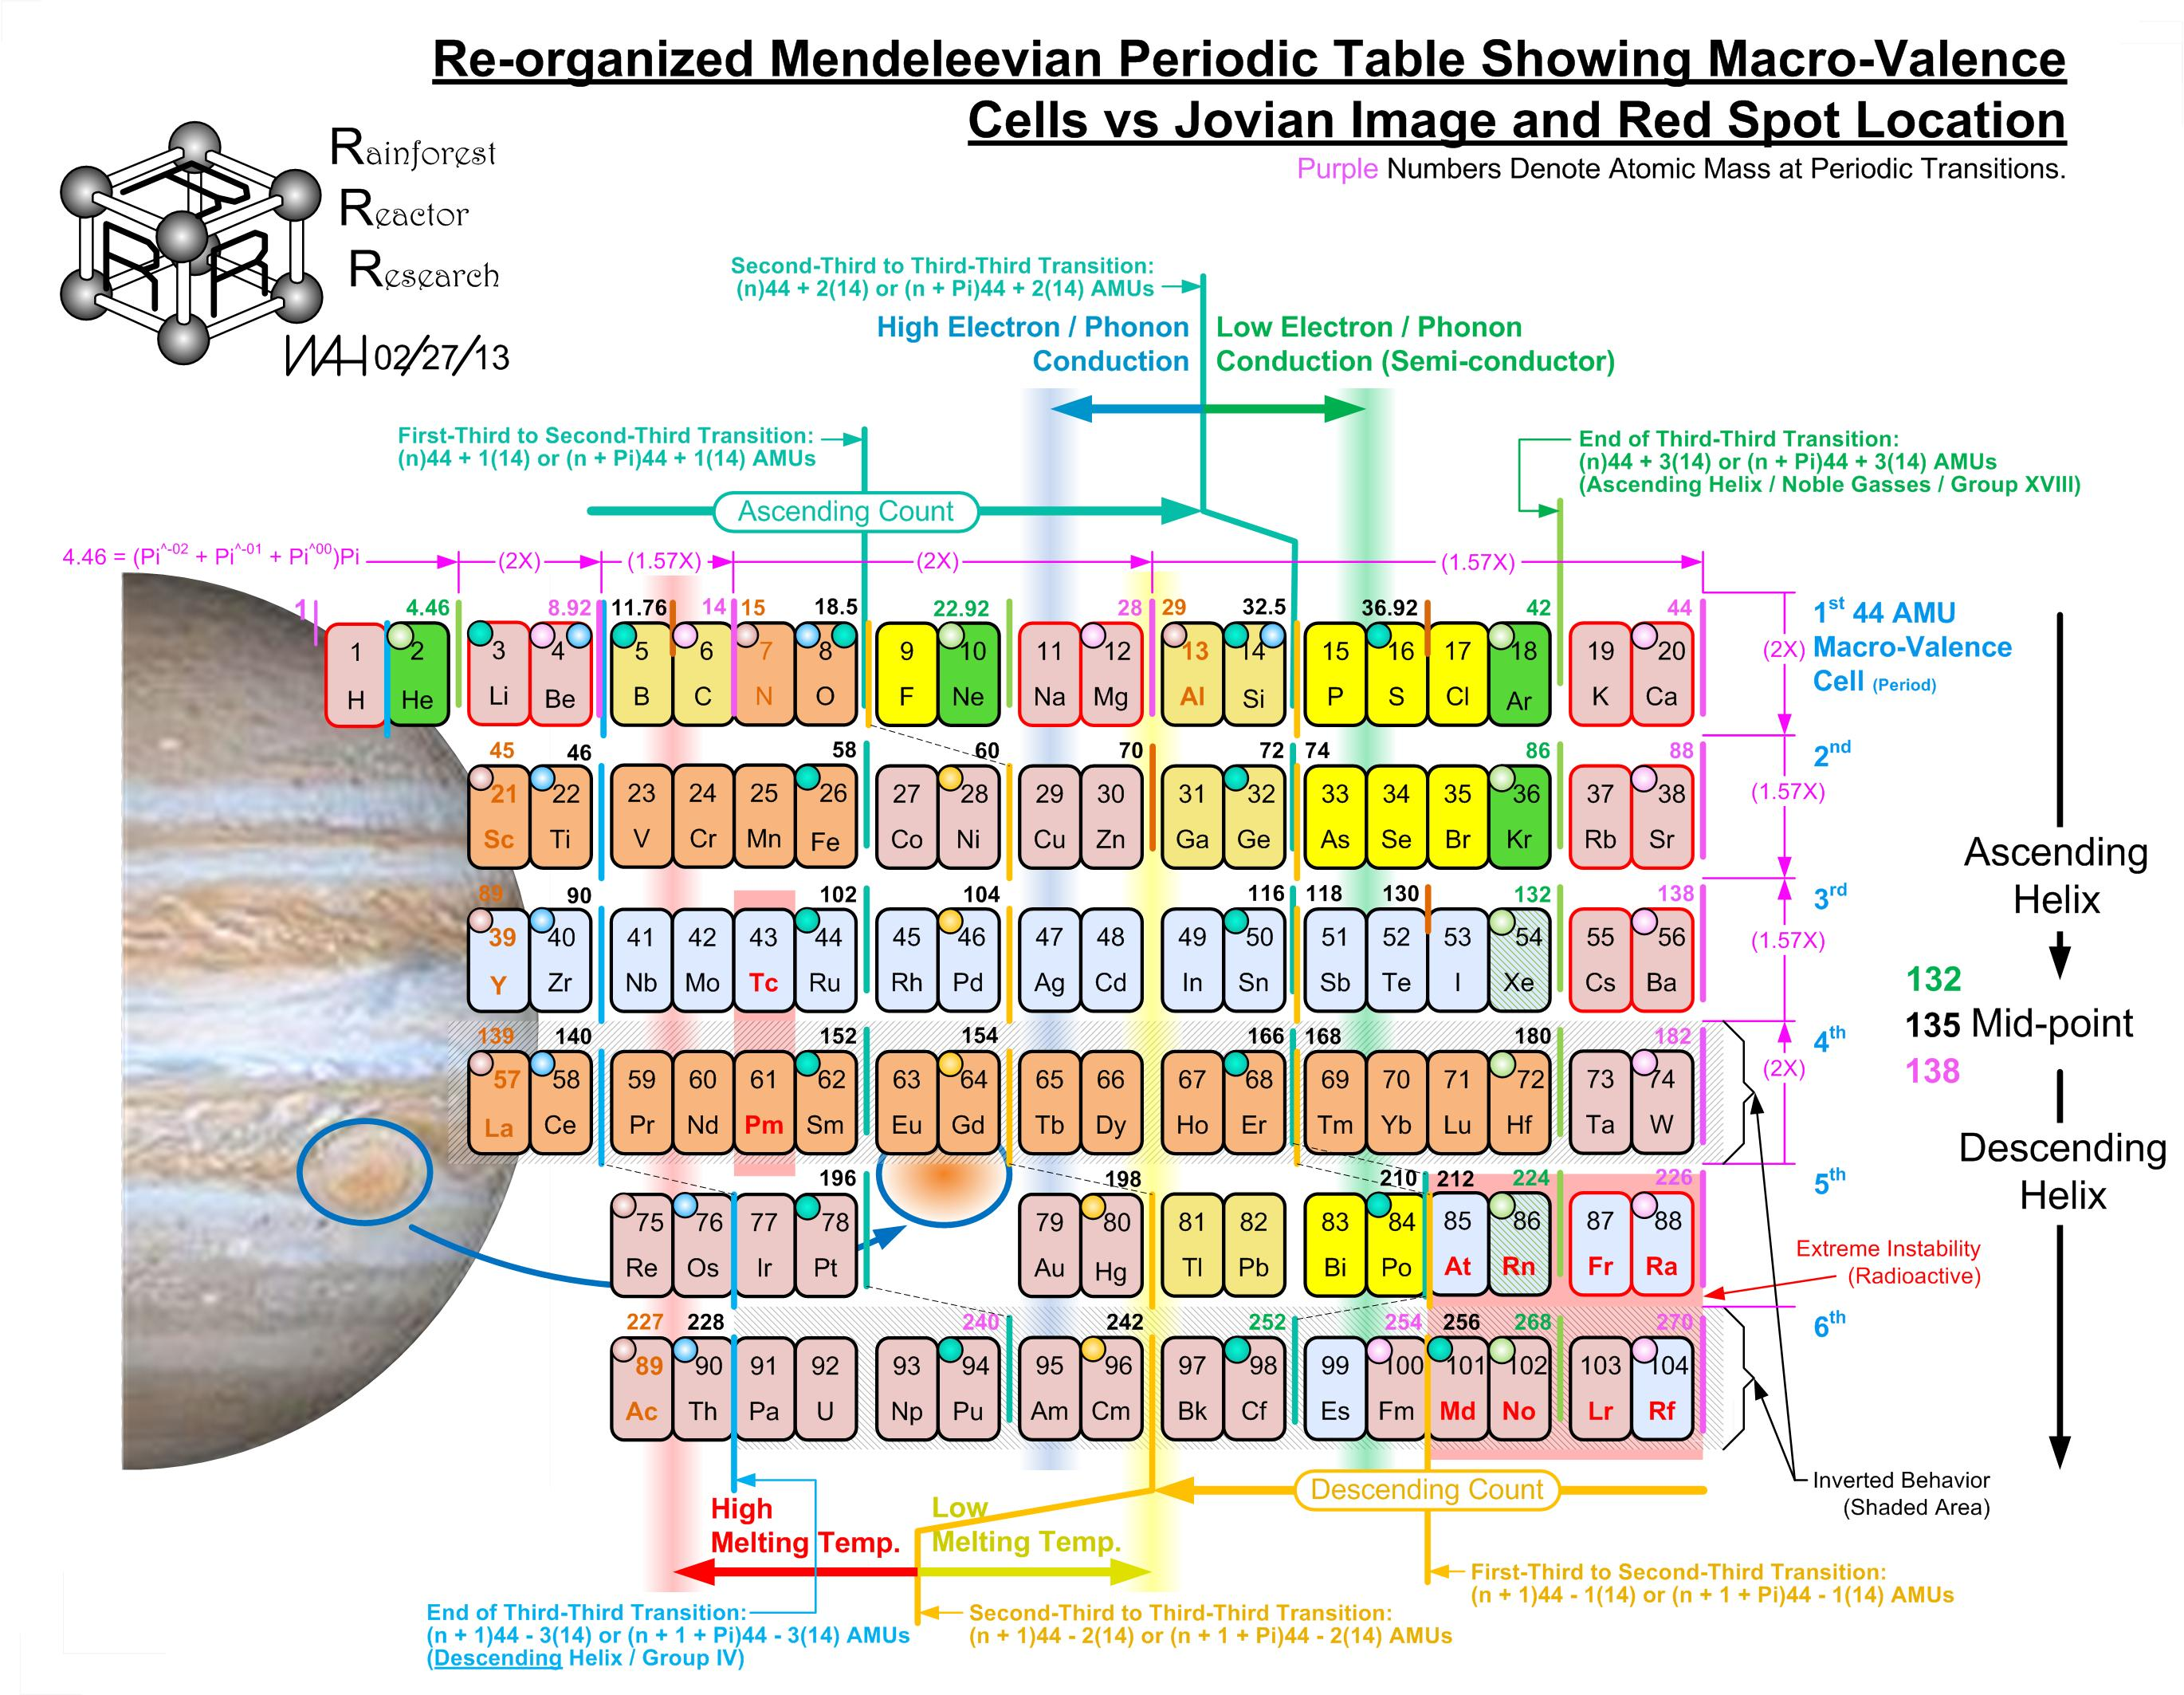 Periodic table database chemogenesis a macro valence cells vs jovian image and red spot location periodic table by bill harrington foundercto of rainforest reactor research and temporal gamestrikefo Image collections